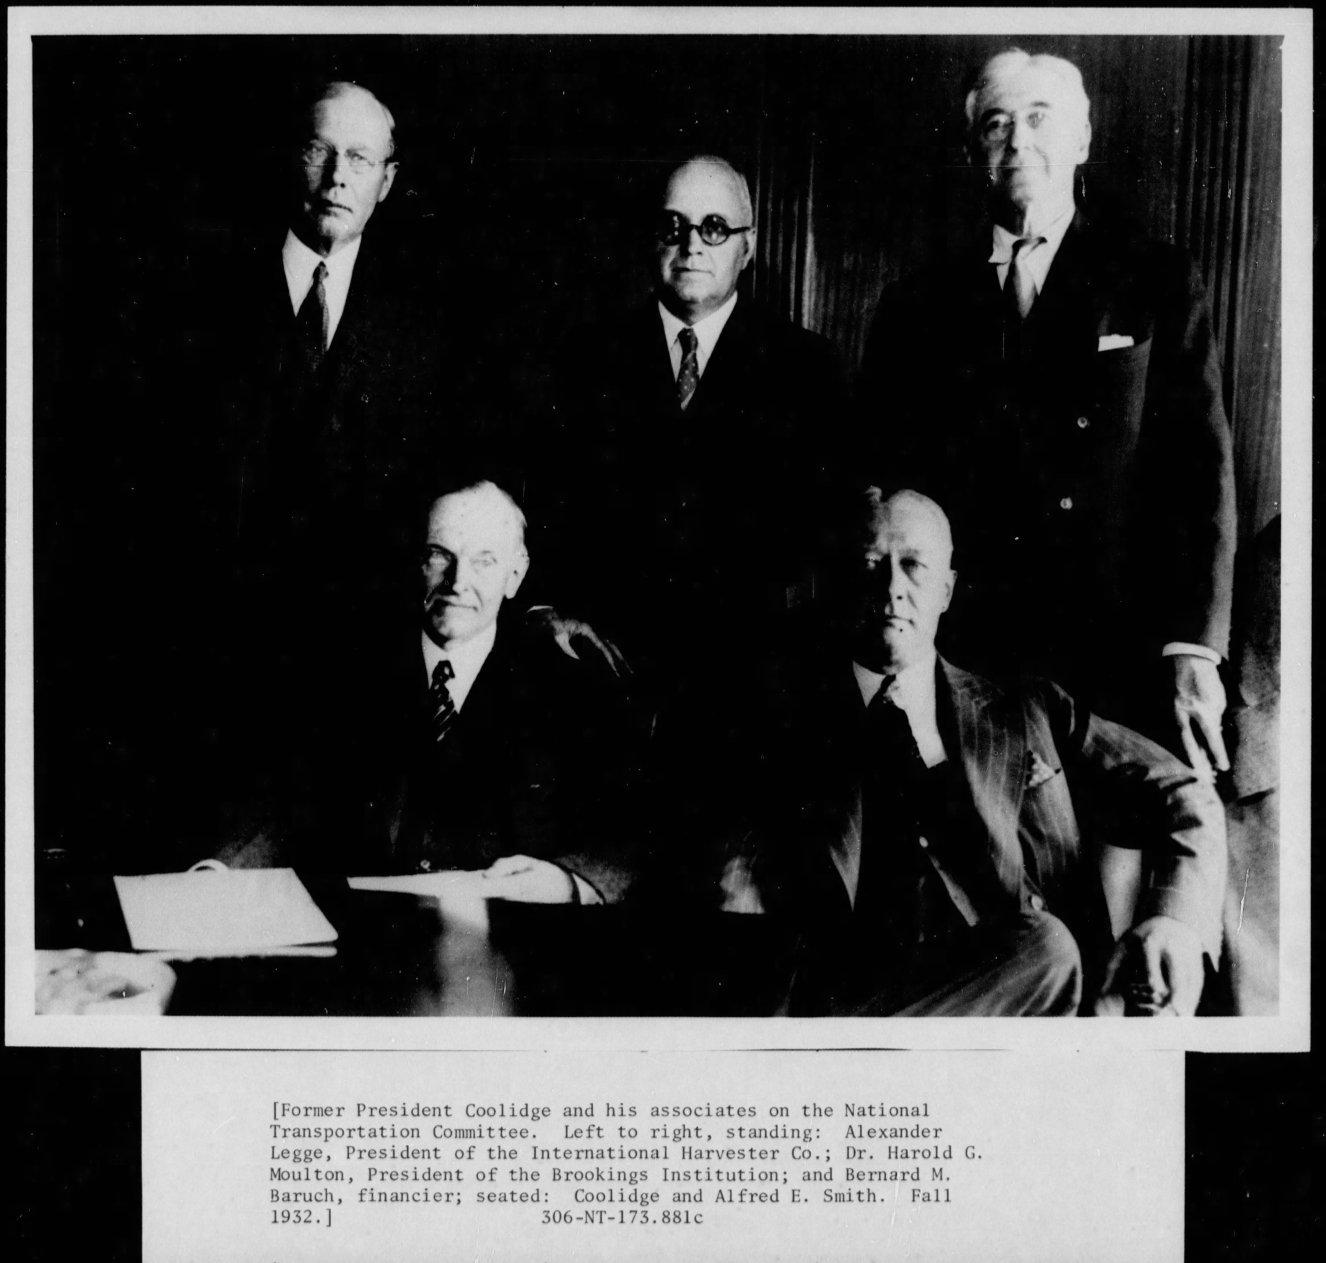 Mr. Coolidge was selected to chair the National Transportation Committee after his service in the White House but he warns fellow member Mr. Baruch against where committee proposals could very easily go, if allowed to do so. Photo courtesy of the National Archives.